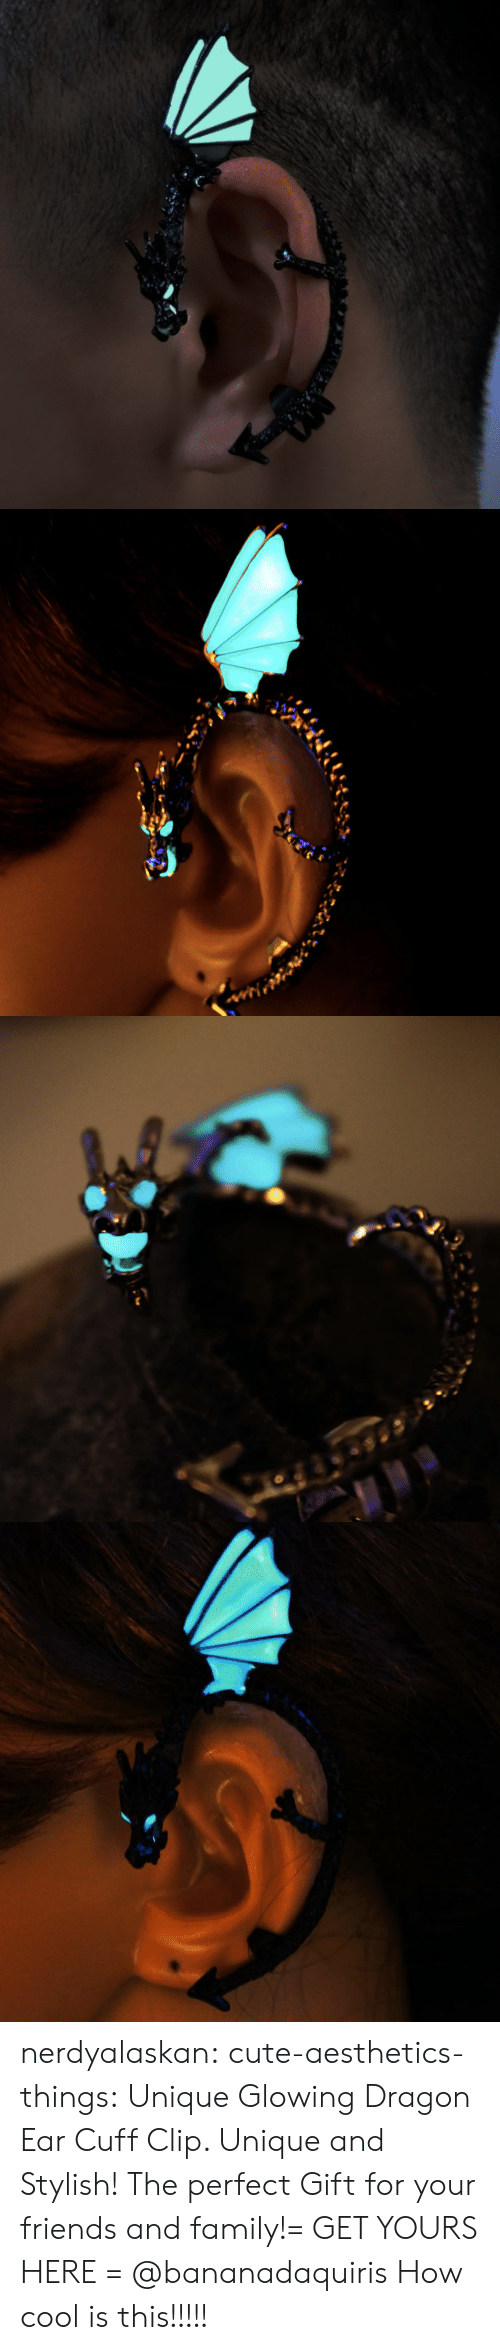 Cute, Family, and Friends: nerdyalaskan:  cute-aesthetics-things:  Unique Glowing Dragon Ear Cuff Clip. Unique and Stylish! The perfect Gift for your friends and family!= GET YOURS HERE =  @bananadaquiris  How cool is this!!!!!